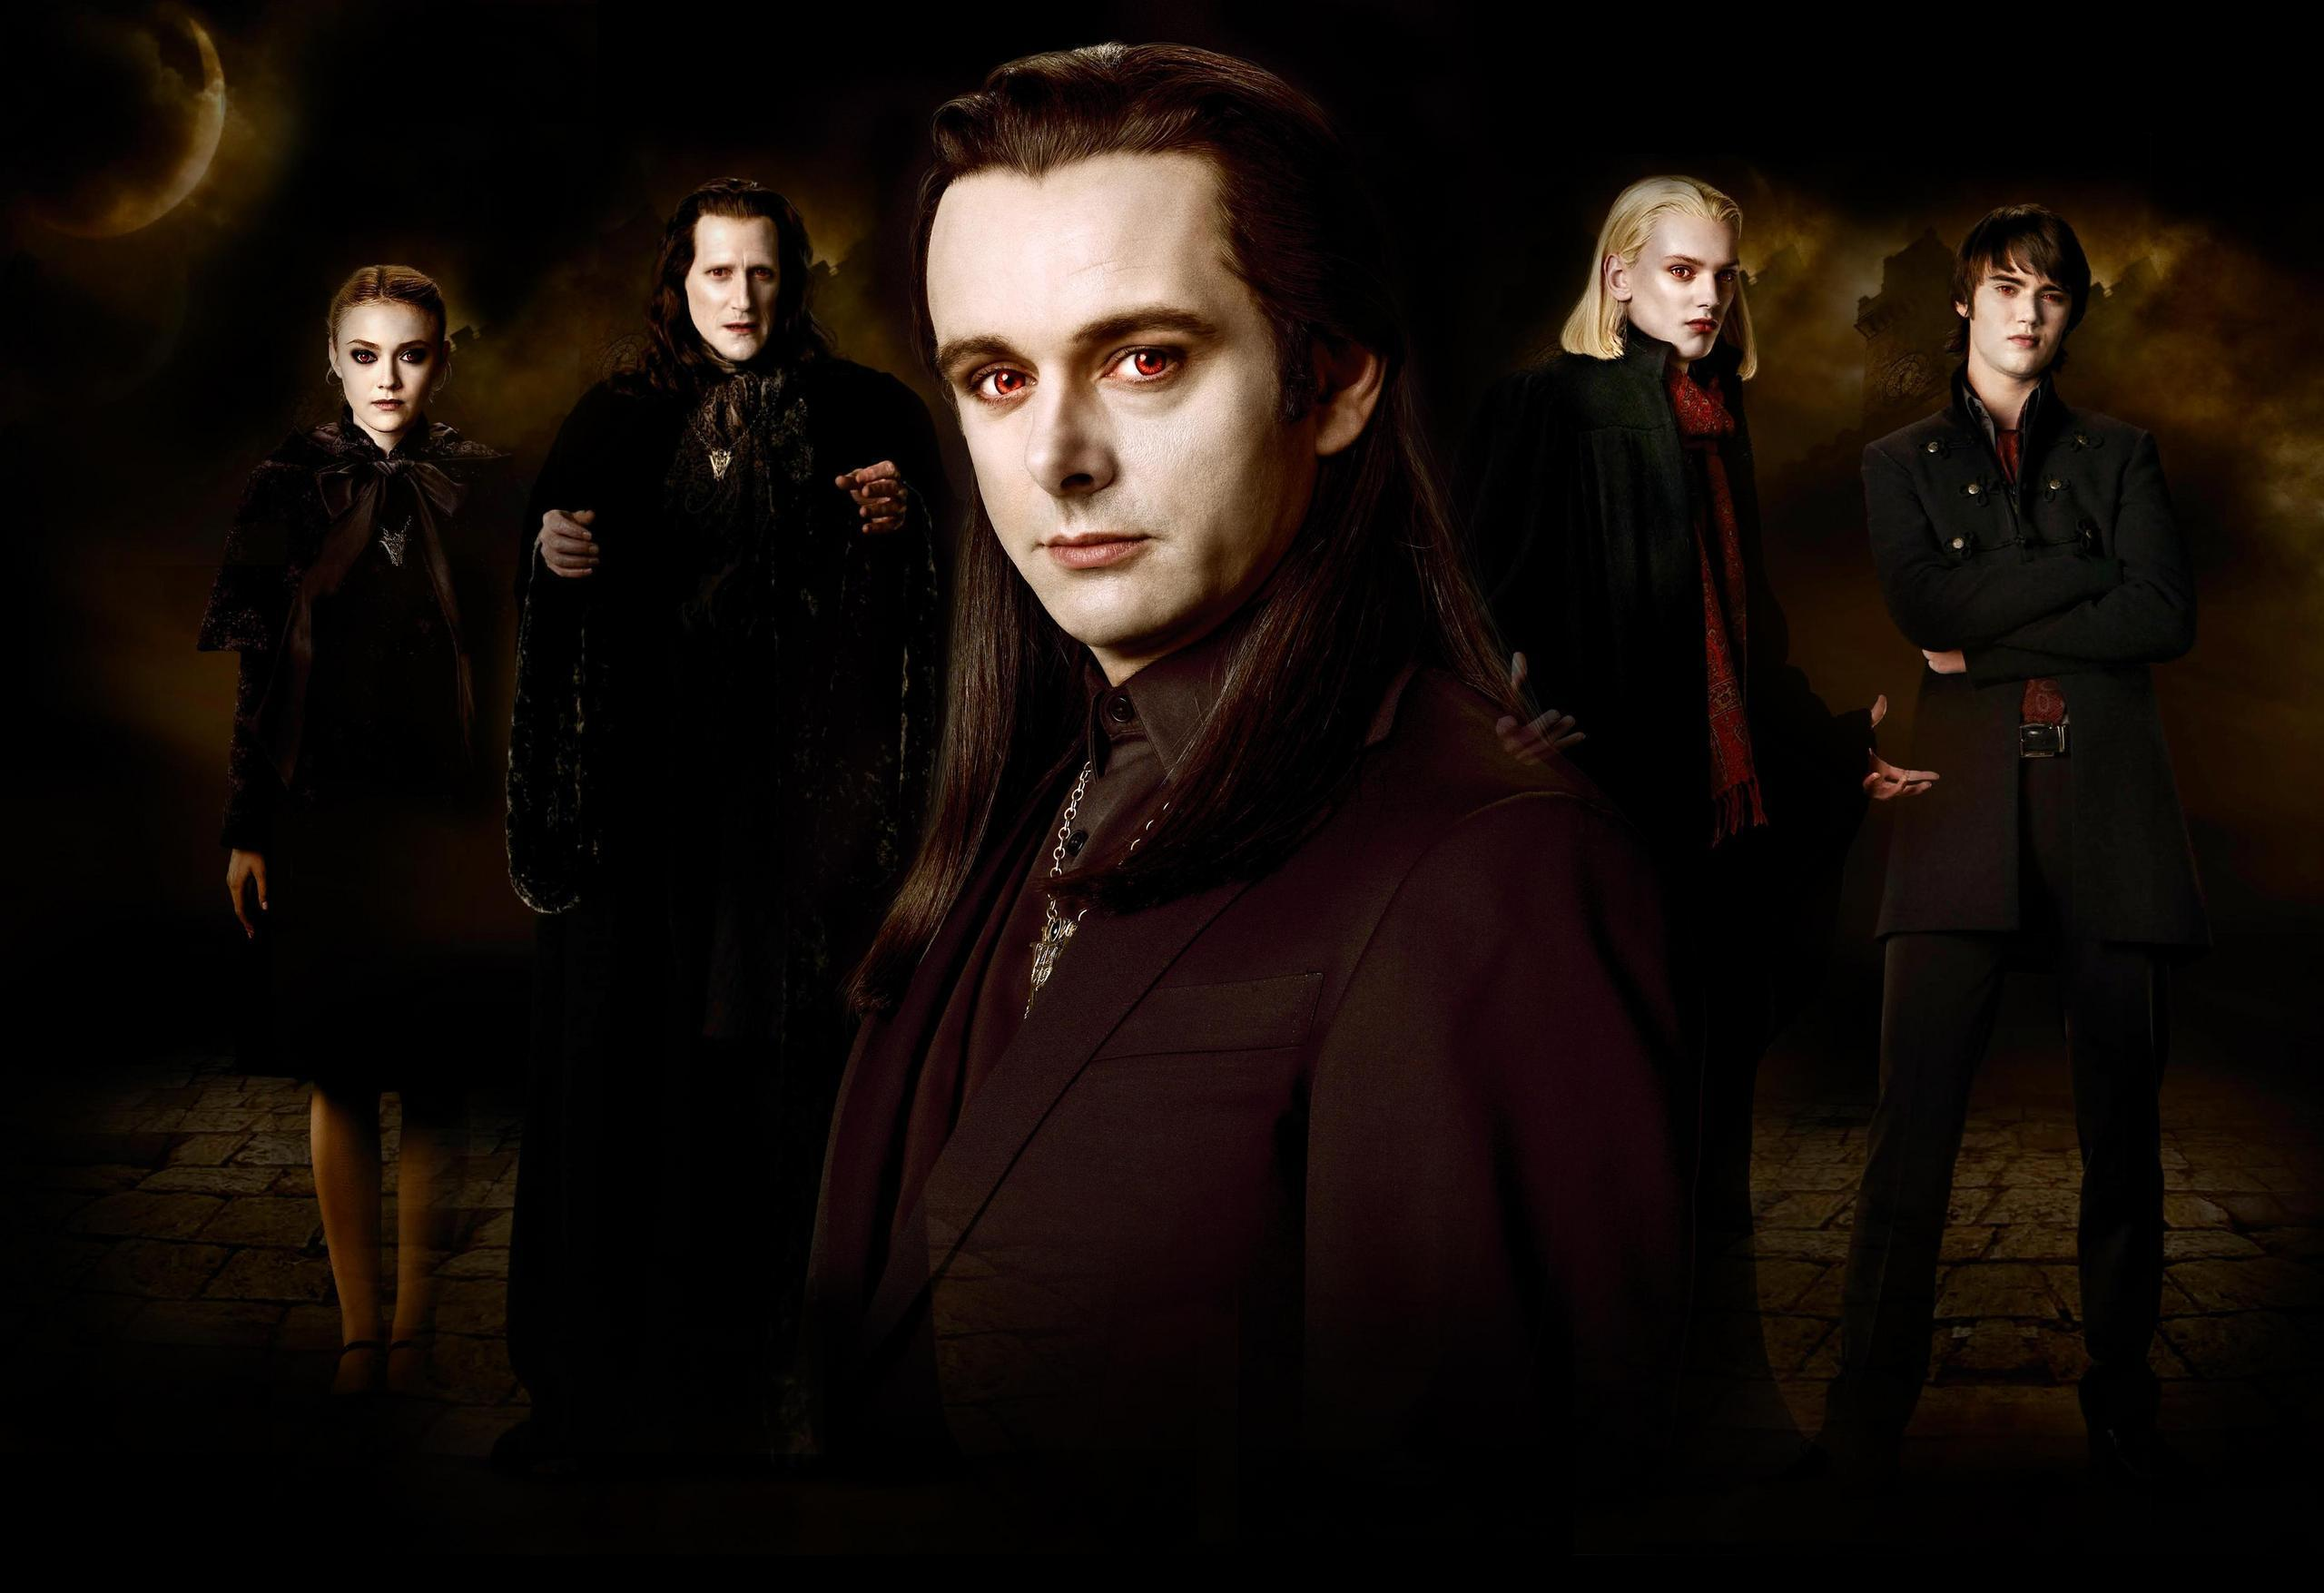 If you could be a Twilight Vampire, would you be good or ...